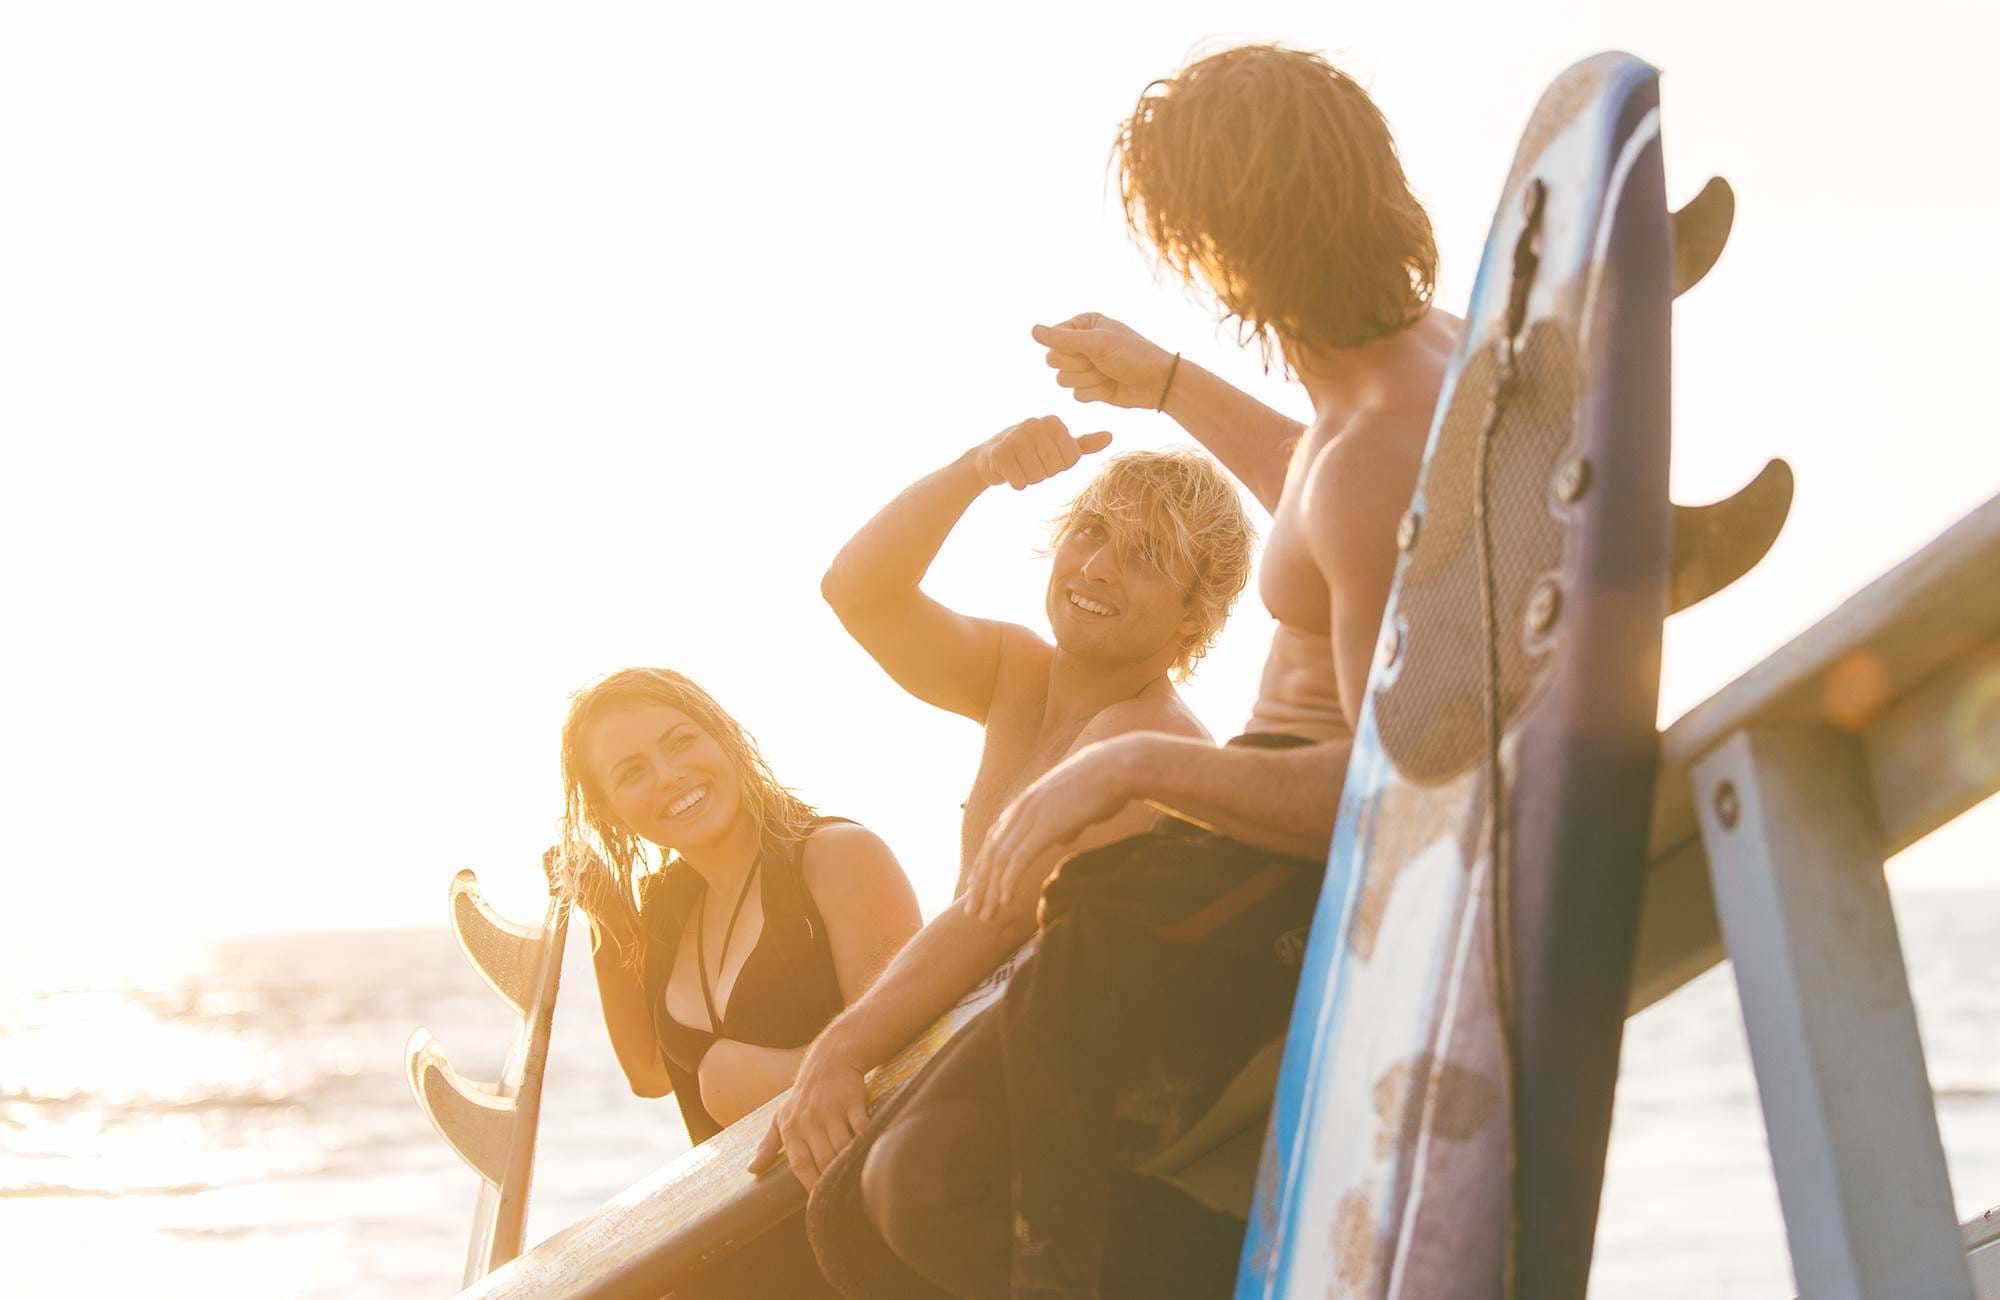 surfing-california-surfers-chilling-on-lifeguard-house-cover